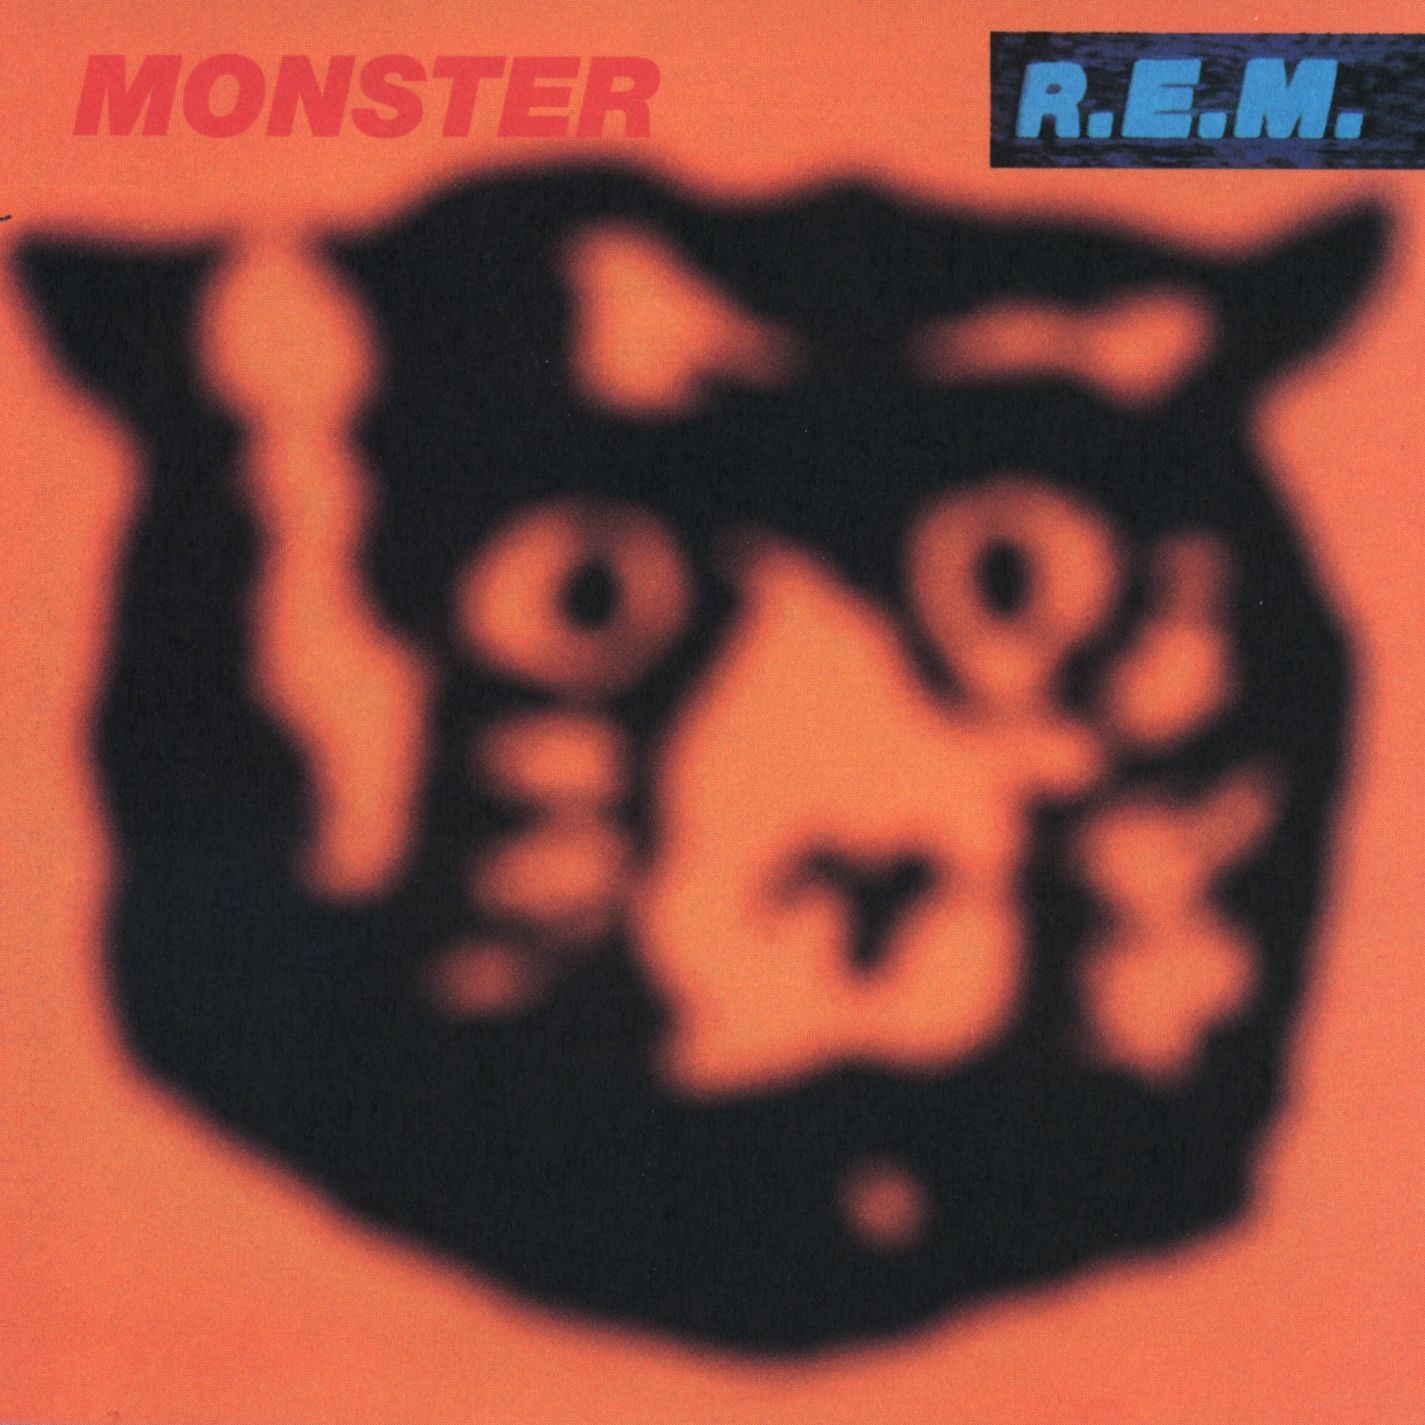 Monster Was the End of R.E.M. as We Knew Them